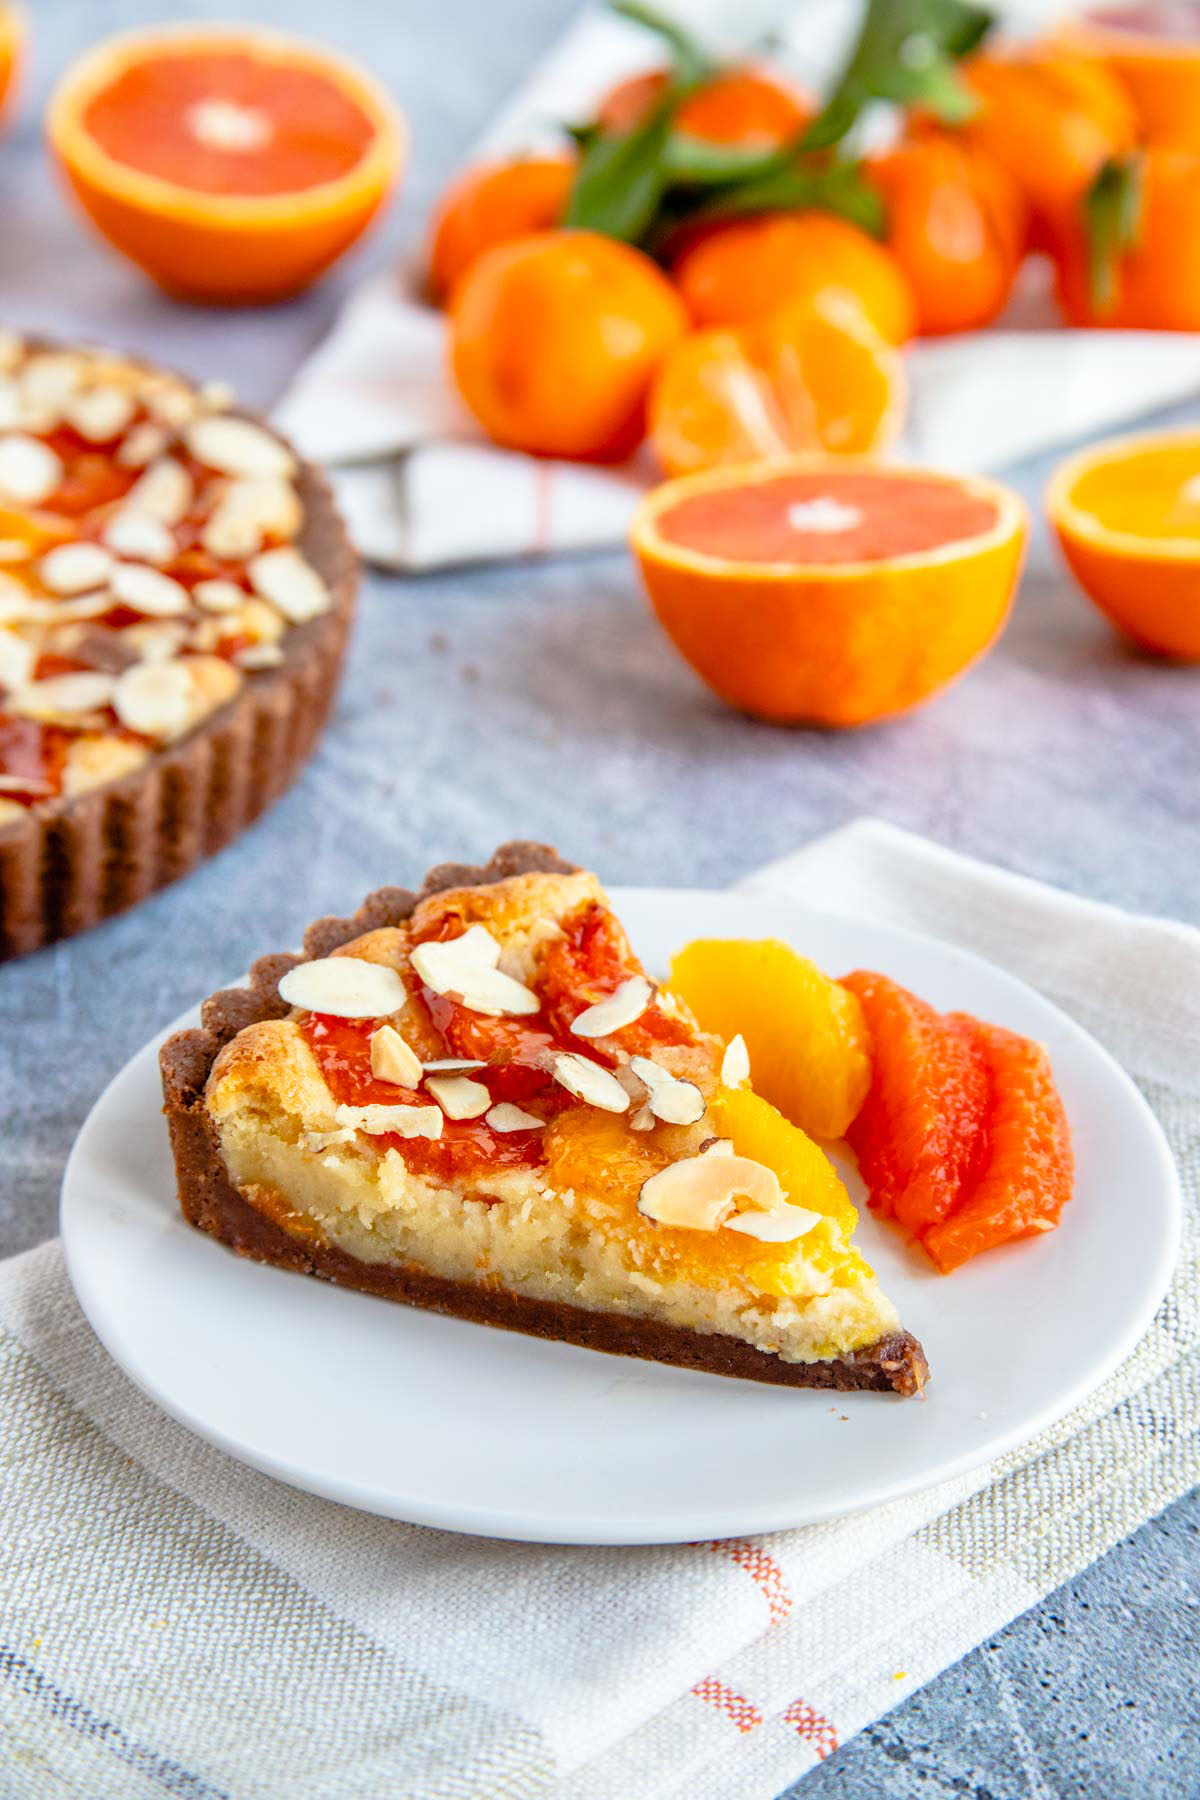 Orange and Chocolate Almond Tart Sprinkled with Toasted Almonds